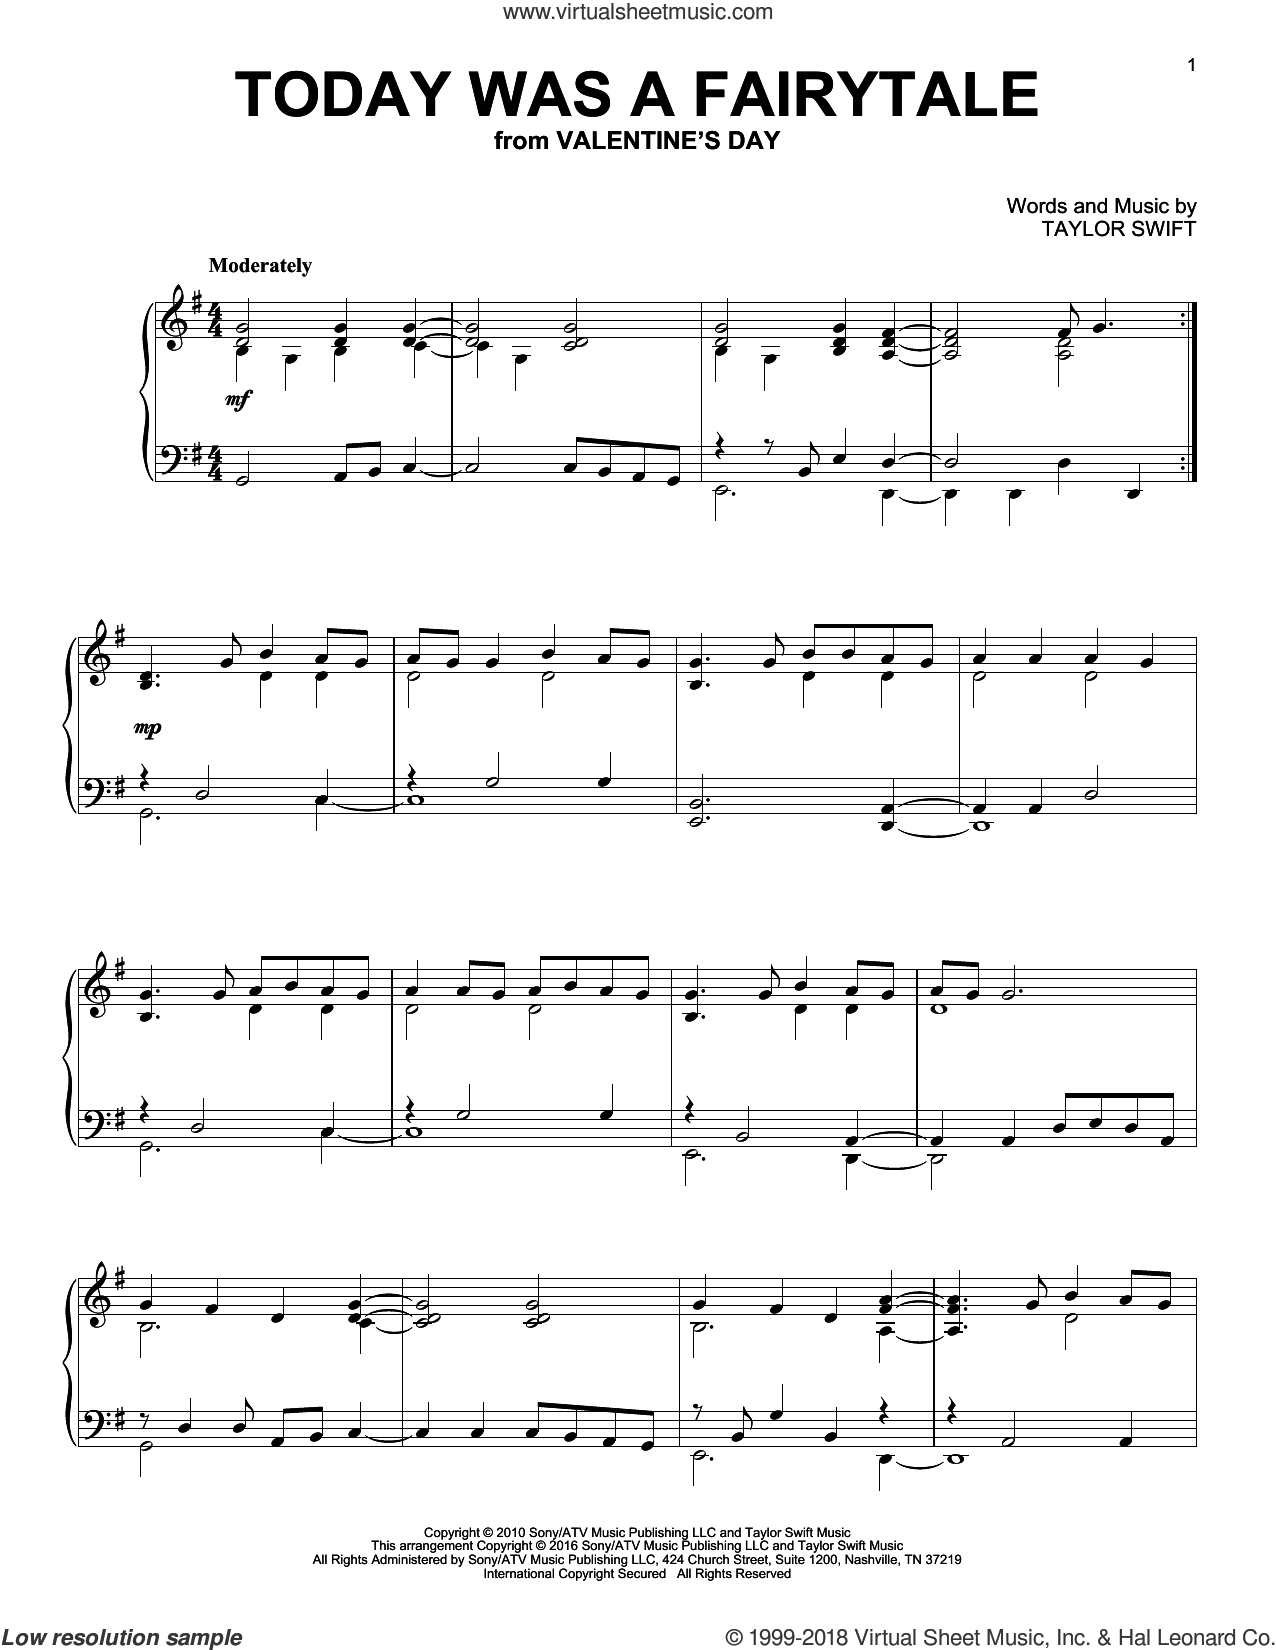 Today Was A Fairytale sheet music for piano solo by Taylor Swift, intermediate skill level